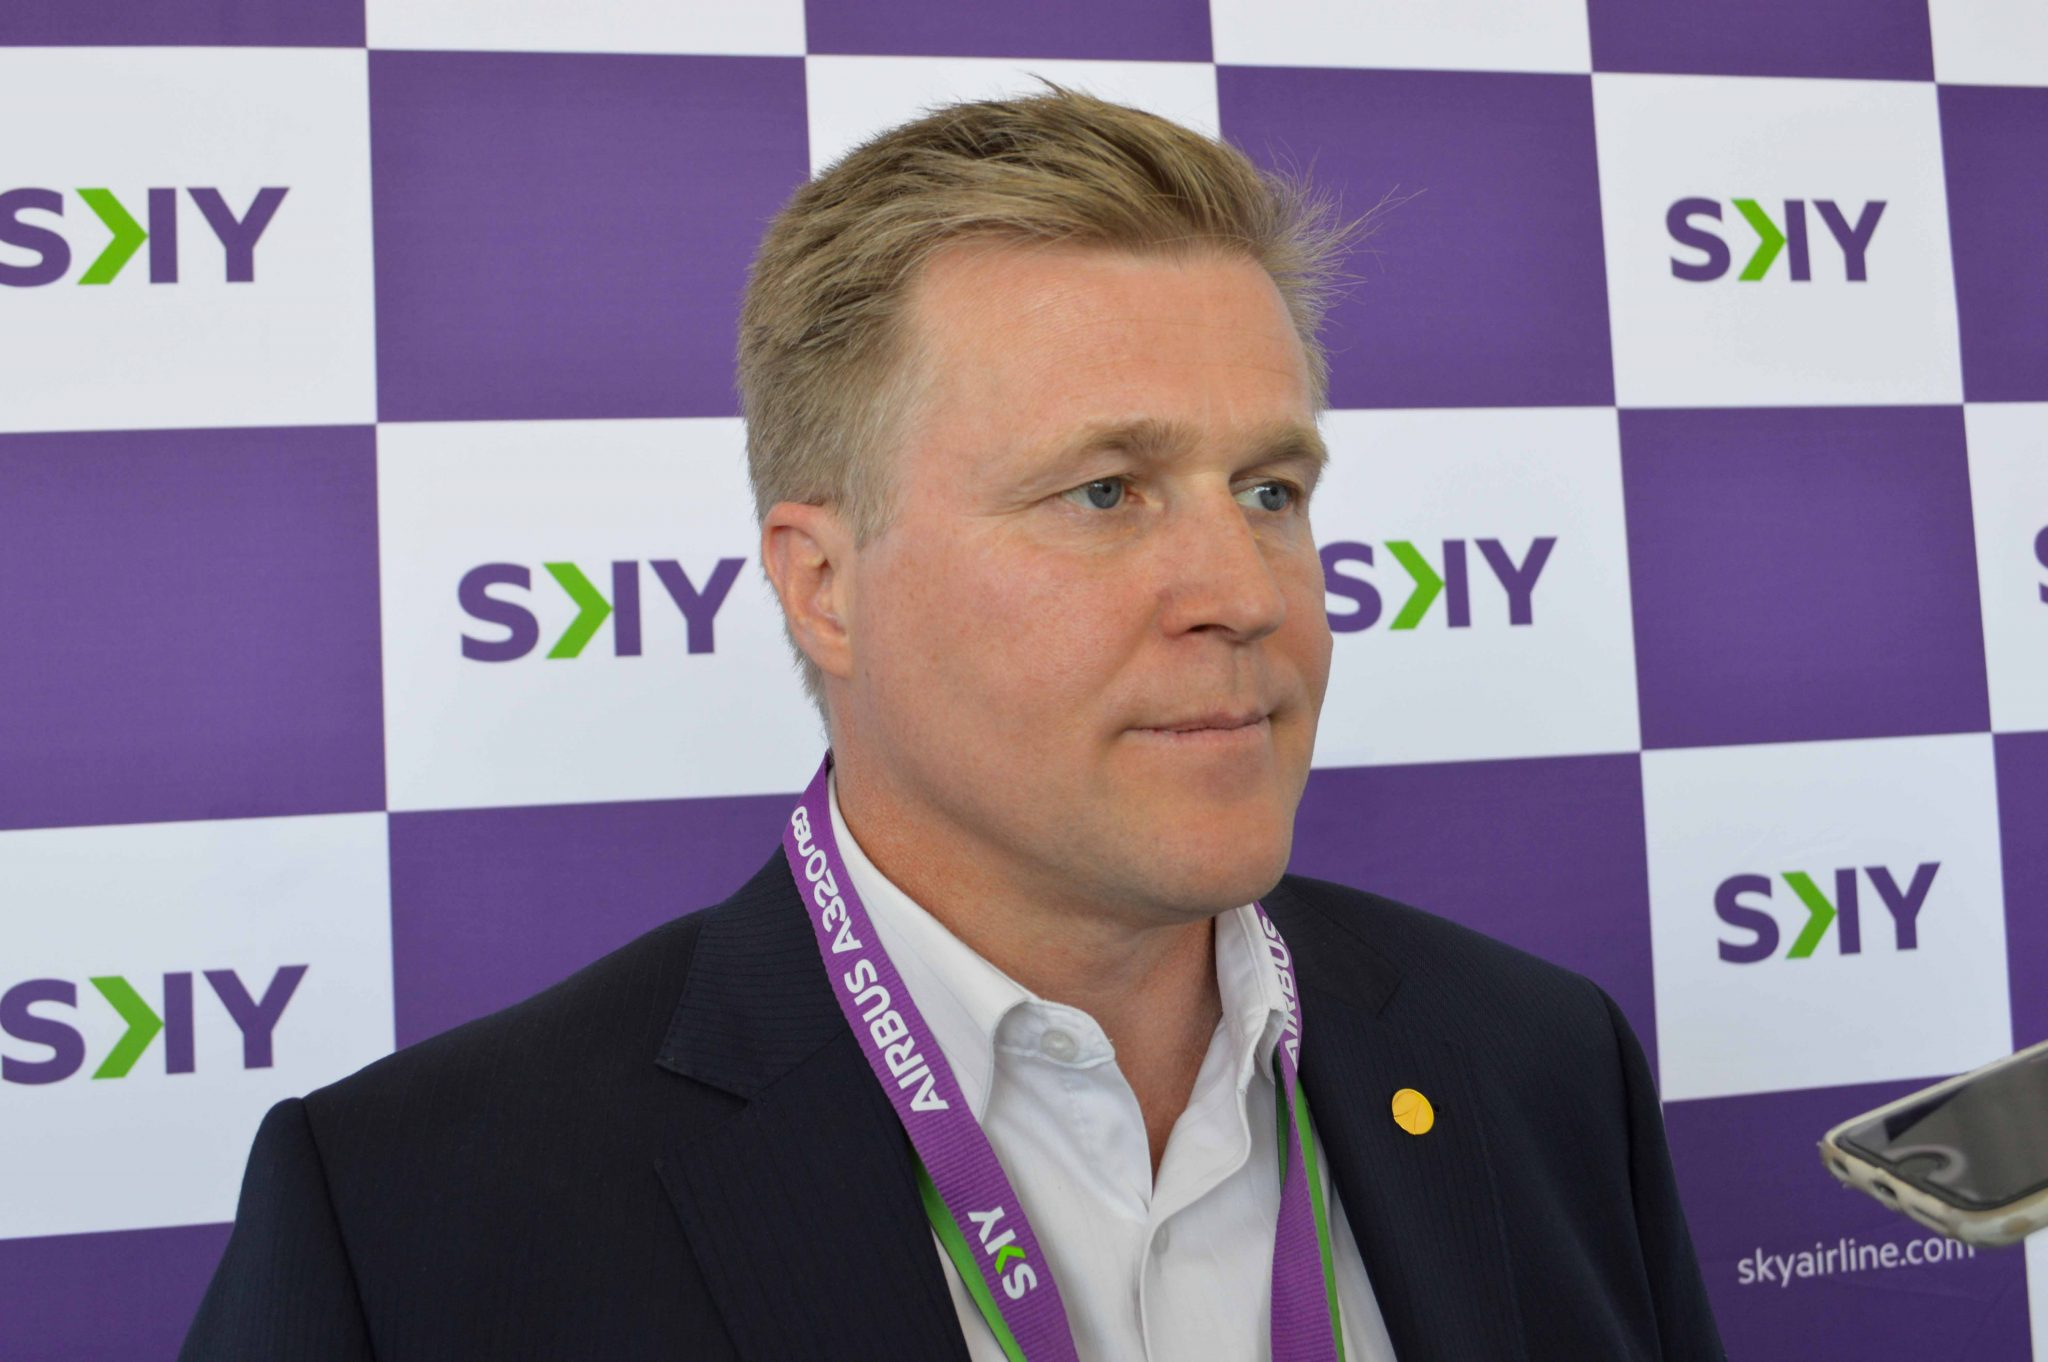 60 seconds with… Holger Paulmann CEO, Sky Airline